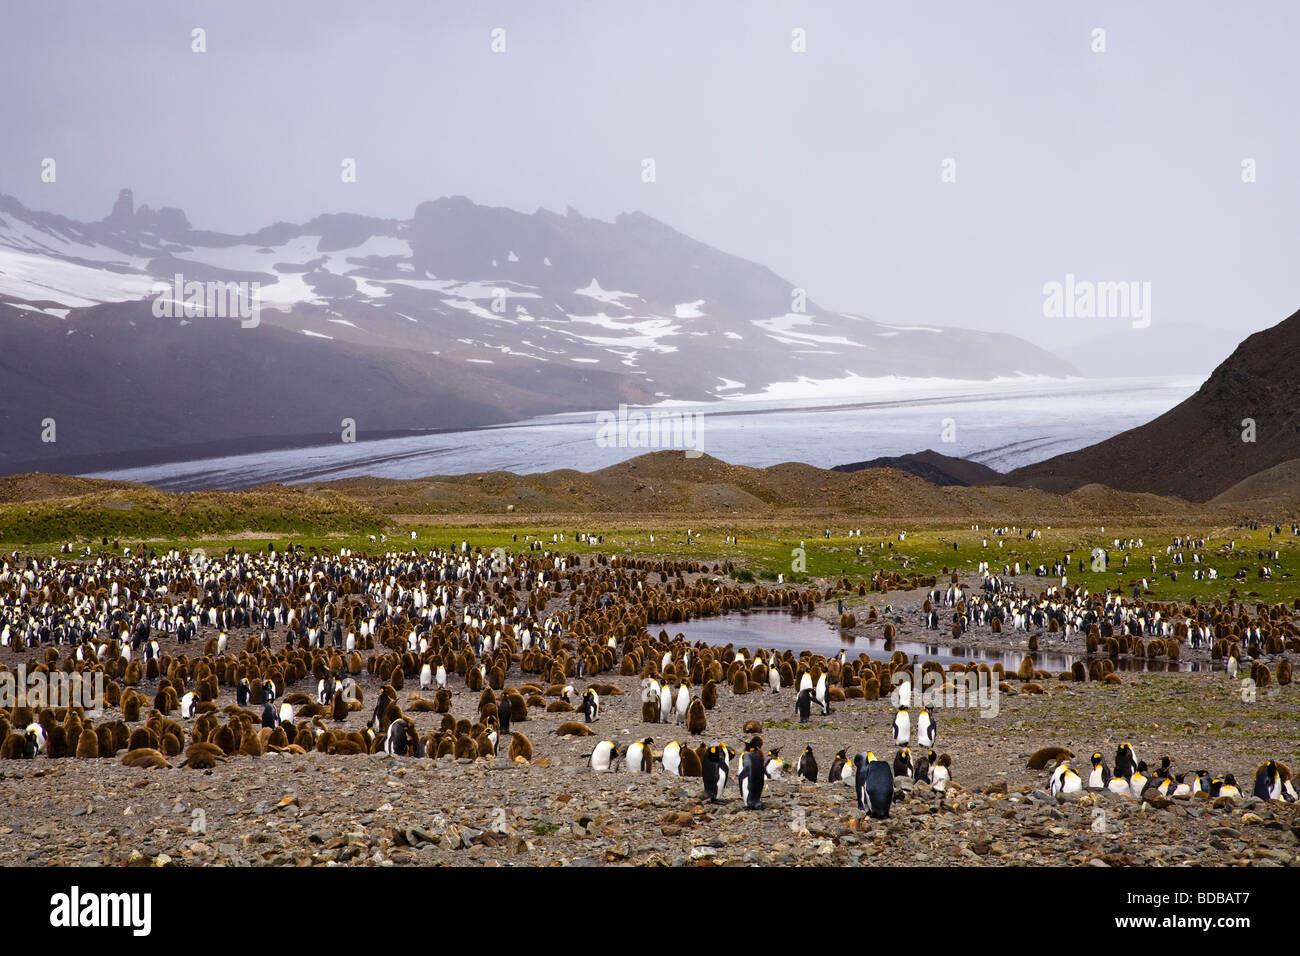 King Penguin Aptenodytes patagonicus colony with mountains and glaciers Fortuna Bay South Georgia Antarctica - Stock Image